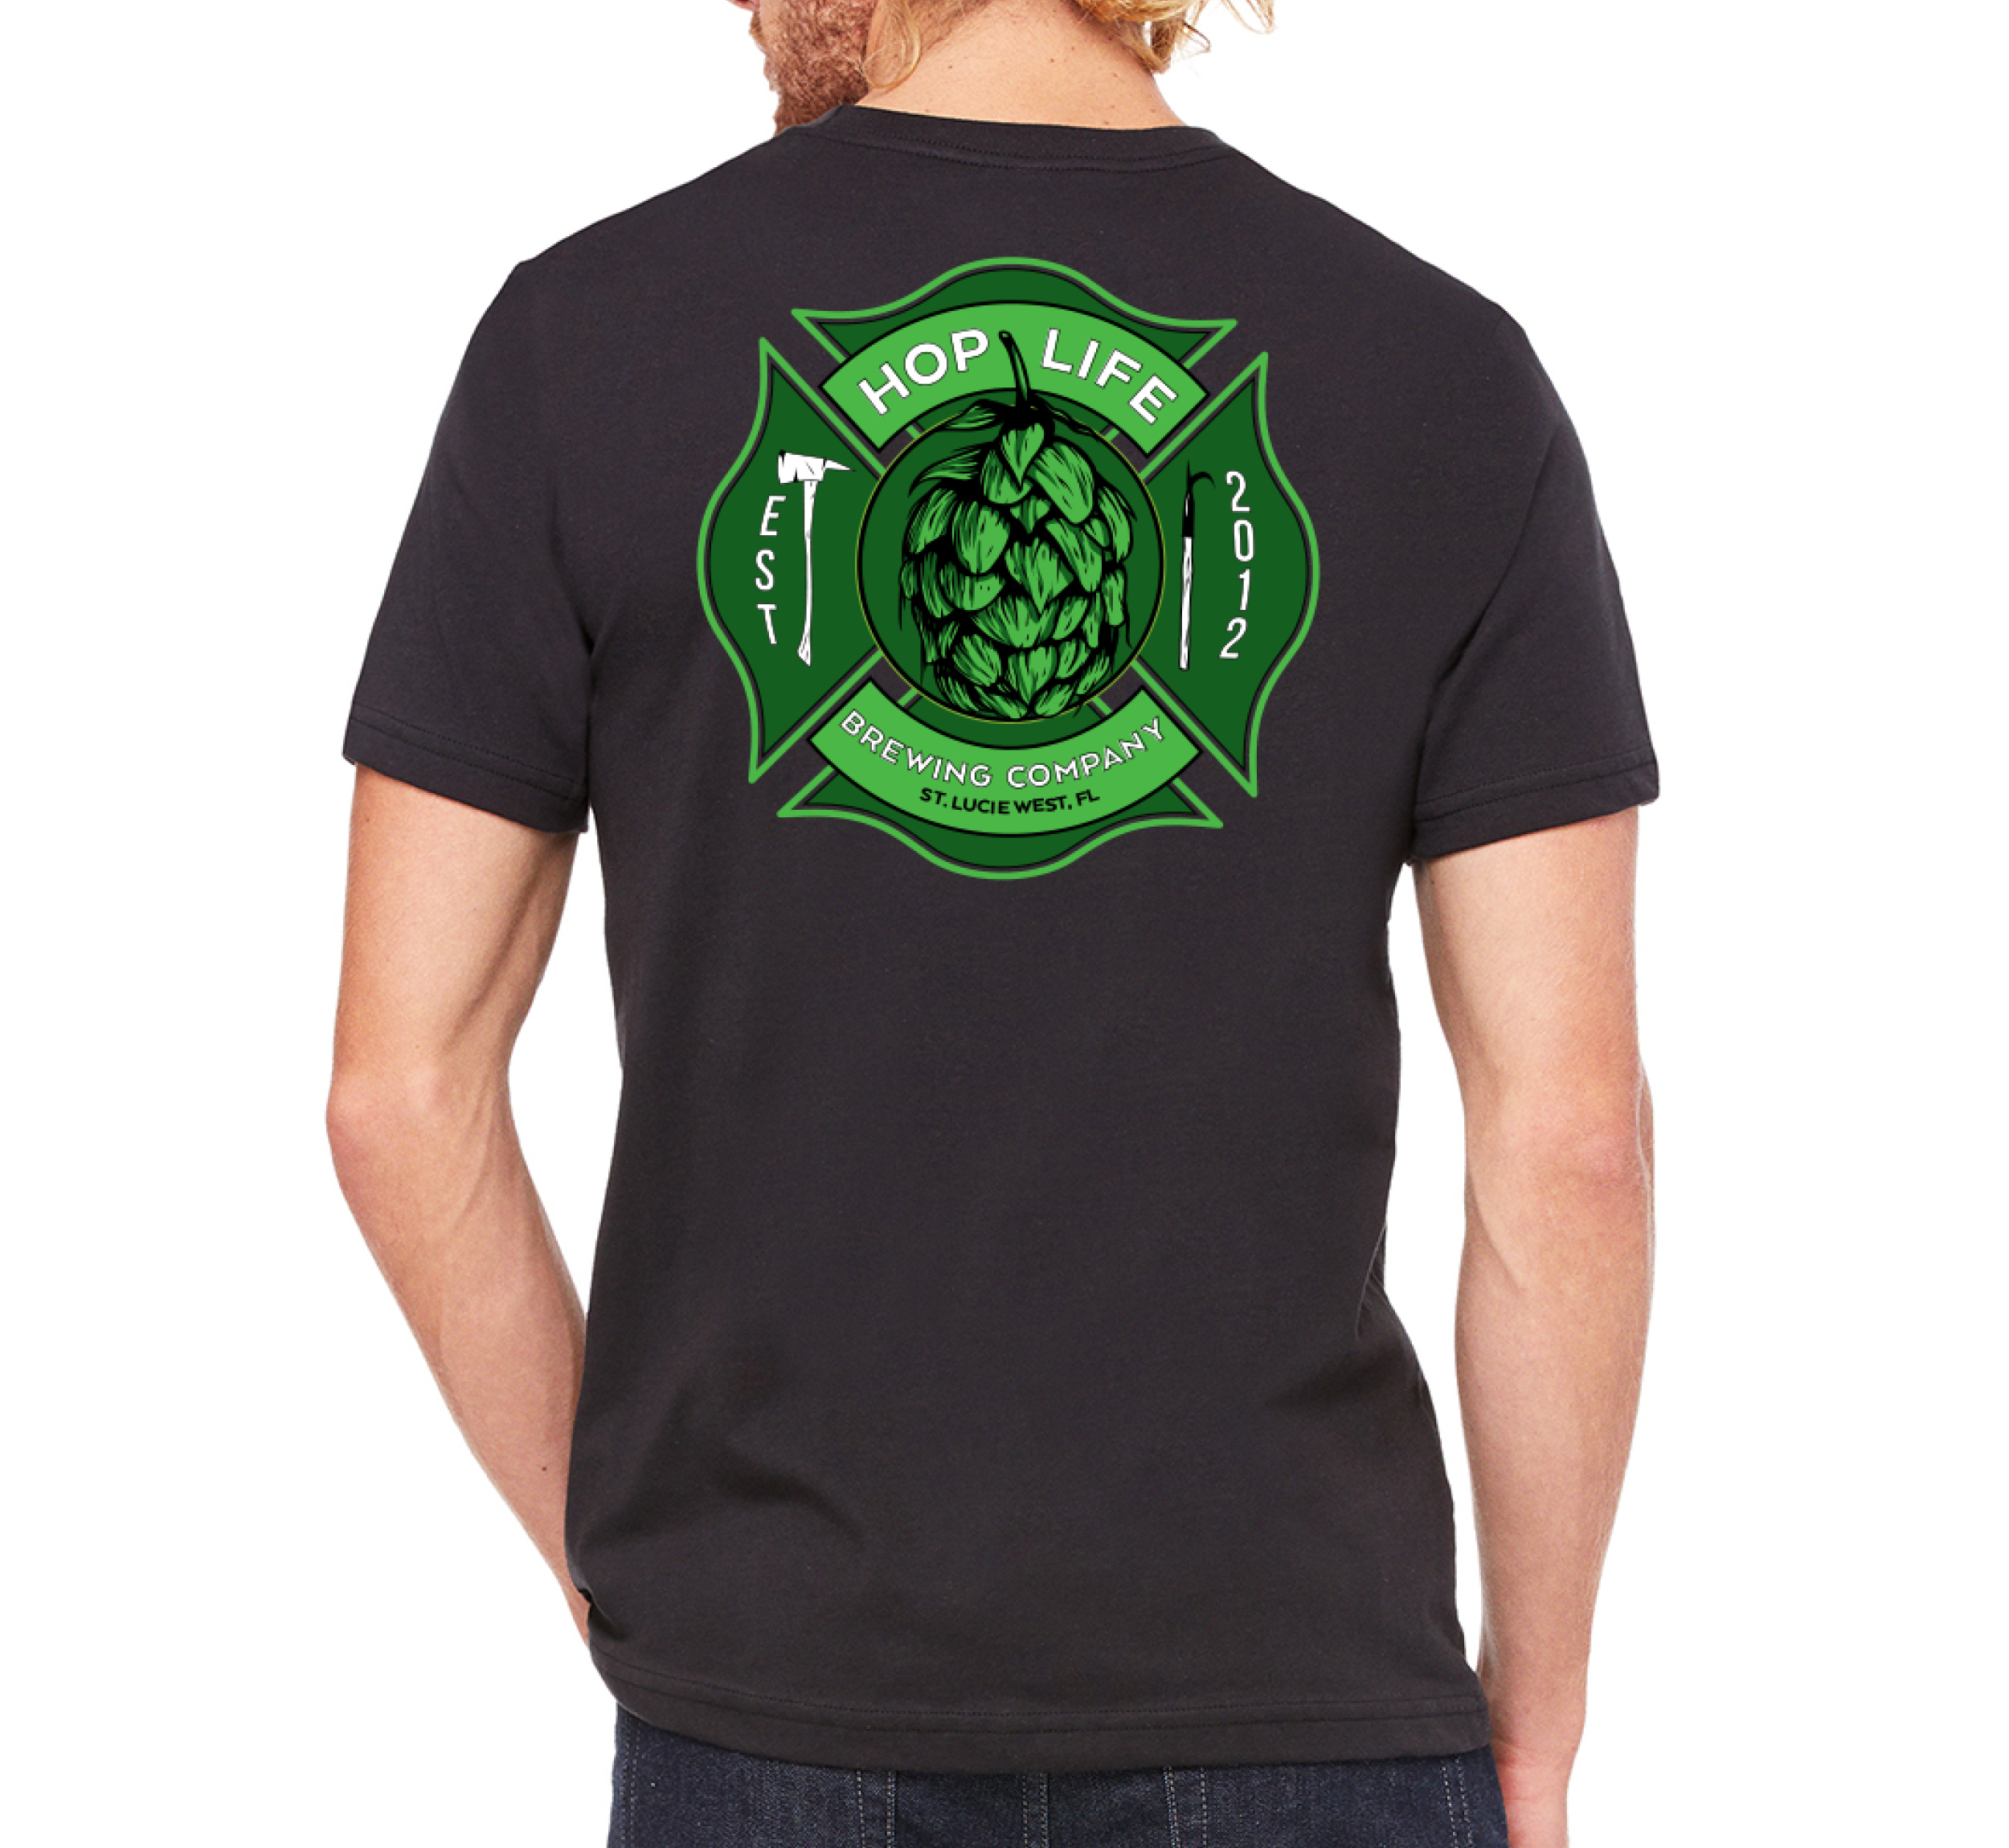 Maltese Cross Tee - Black - Hop Life Brewing Company